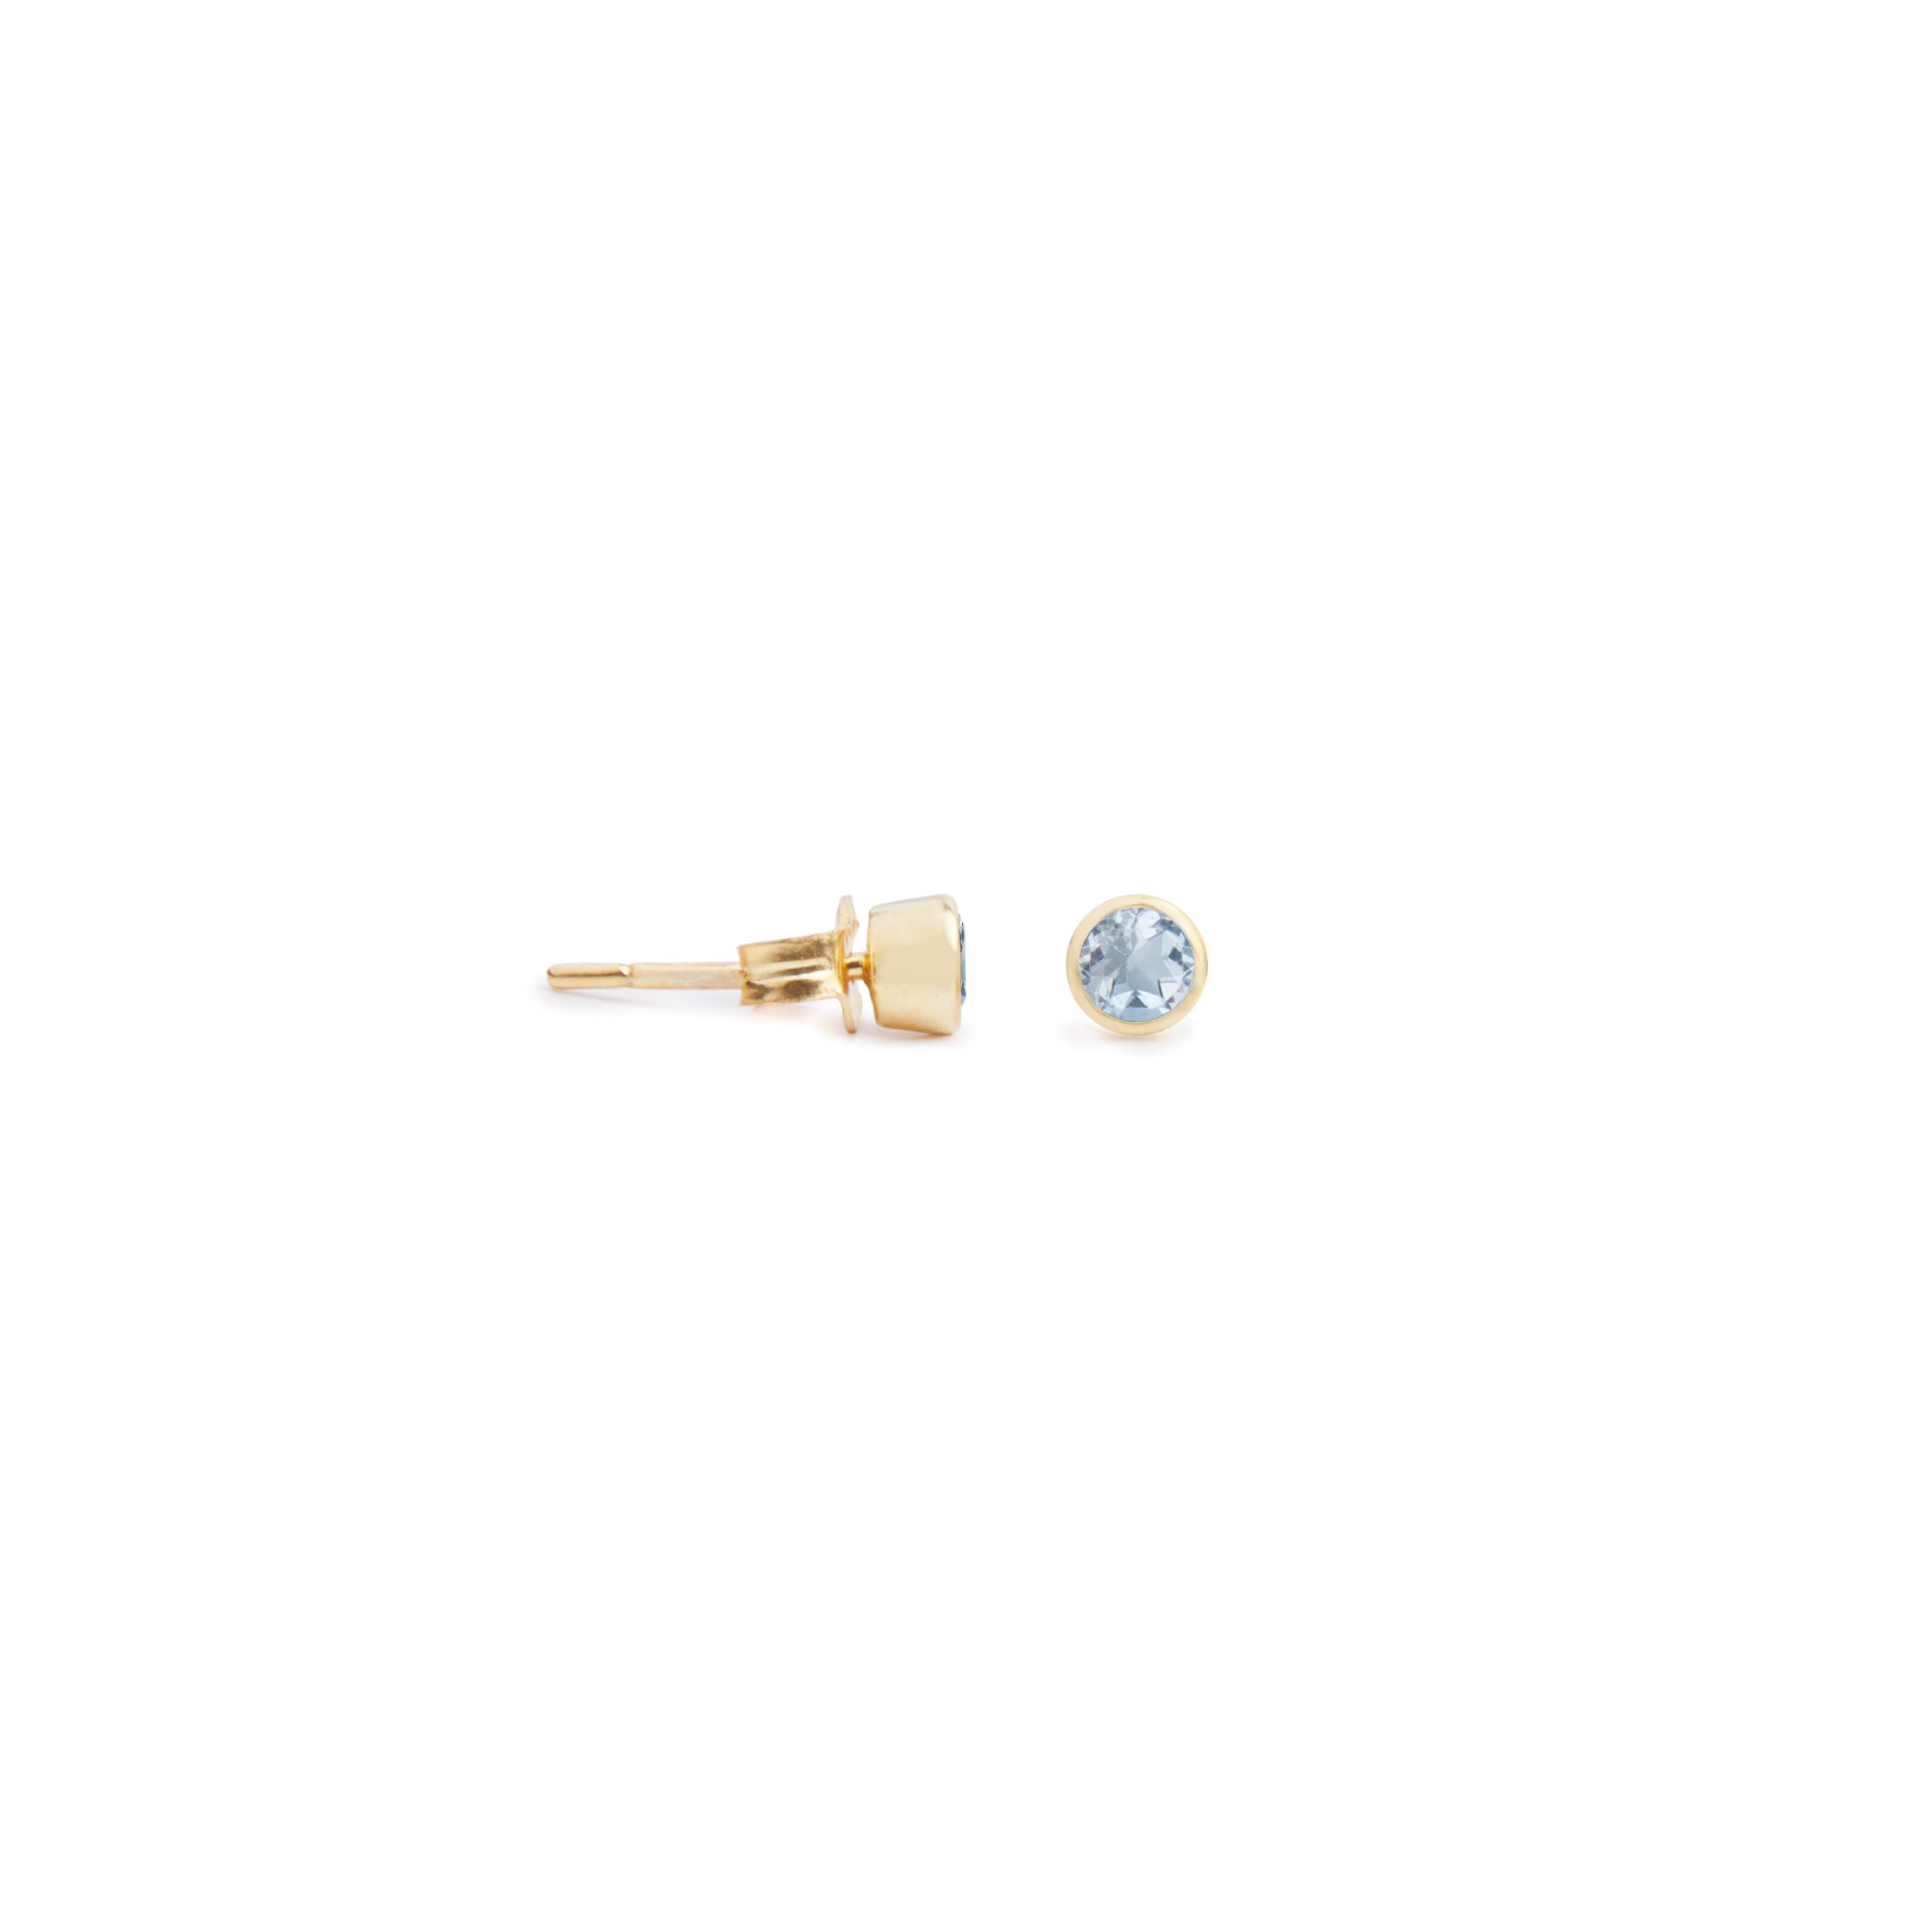 Acer Ear stud in Gold with Blue Topaz